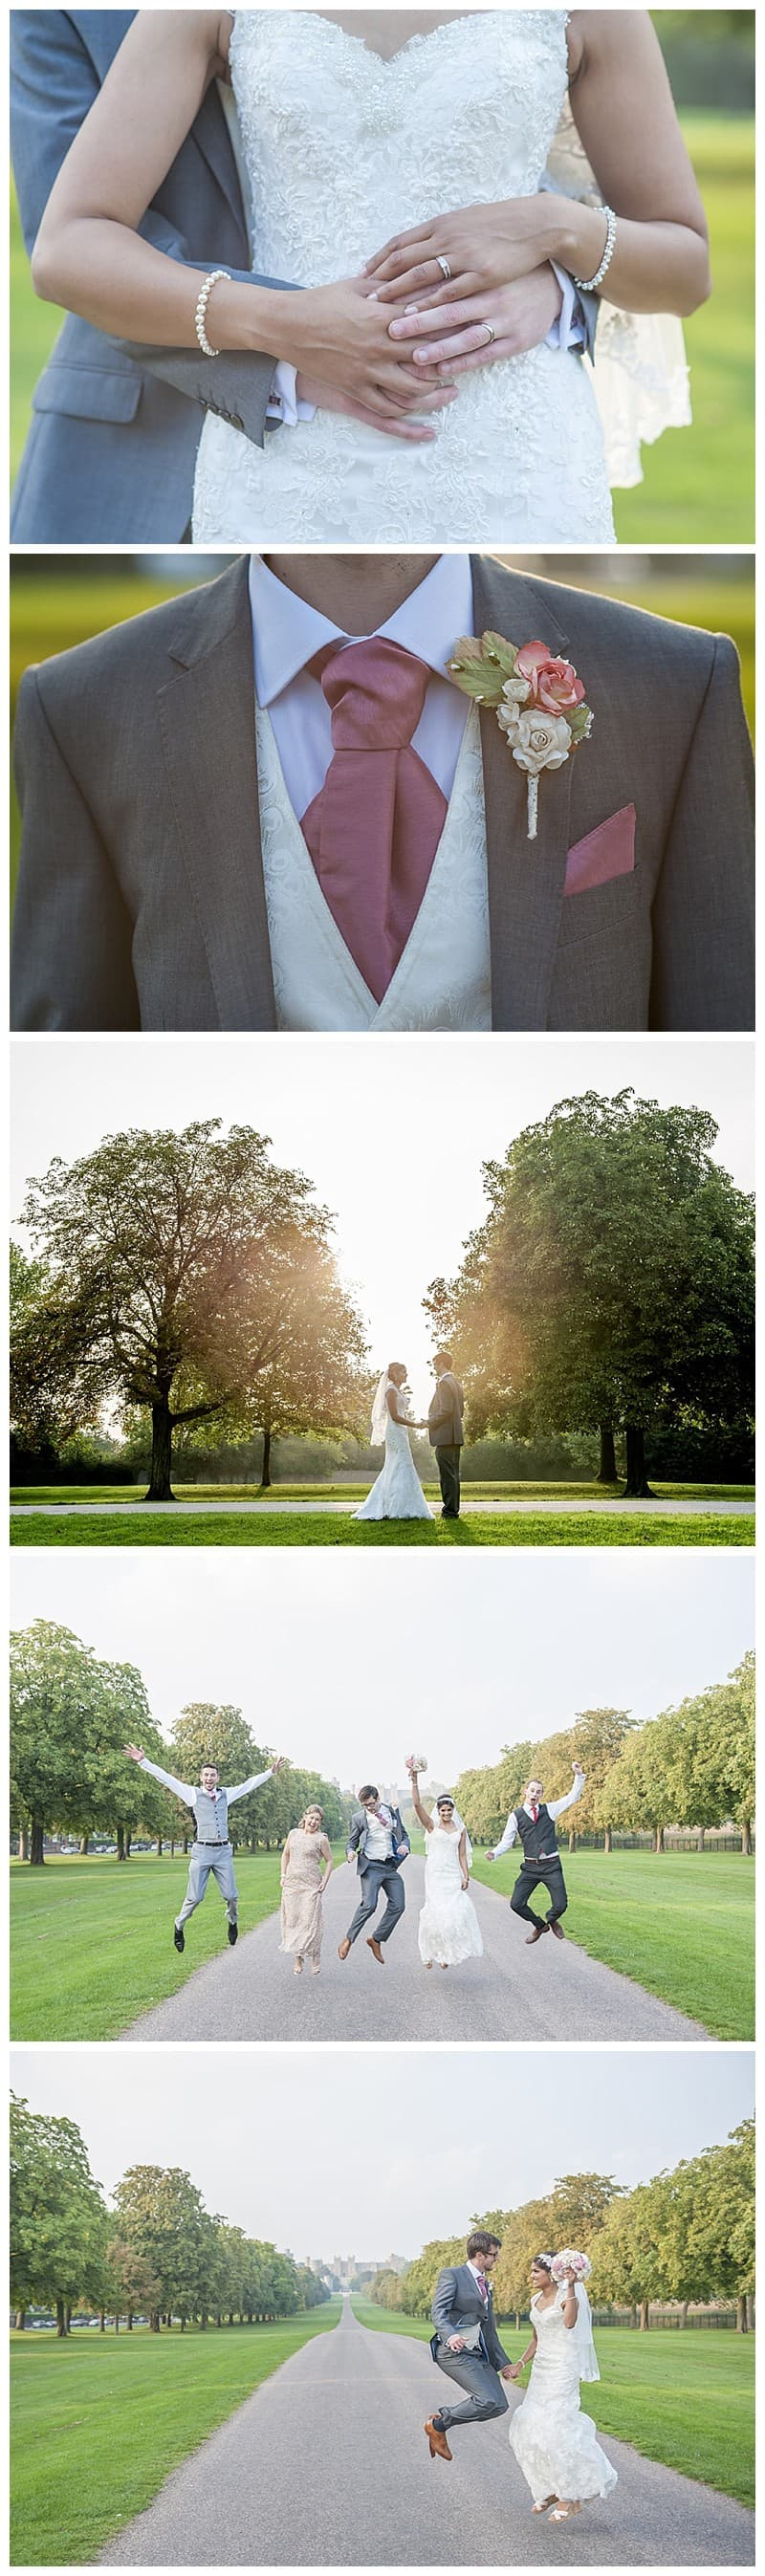 Jamie & Nisha, Windsor Castle Wedding, Benjamin Wetherall Photography 0014